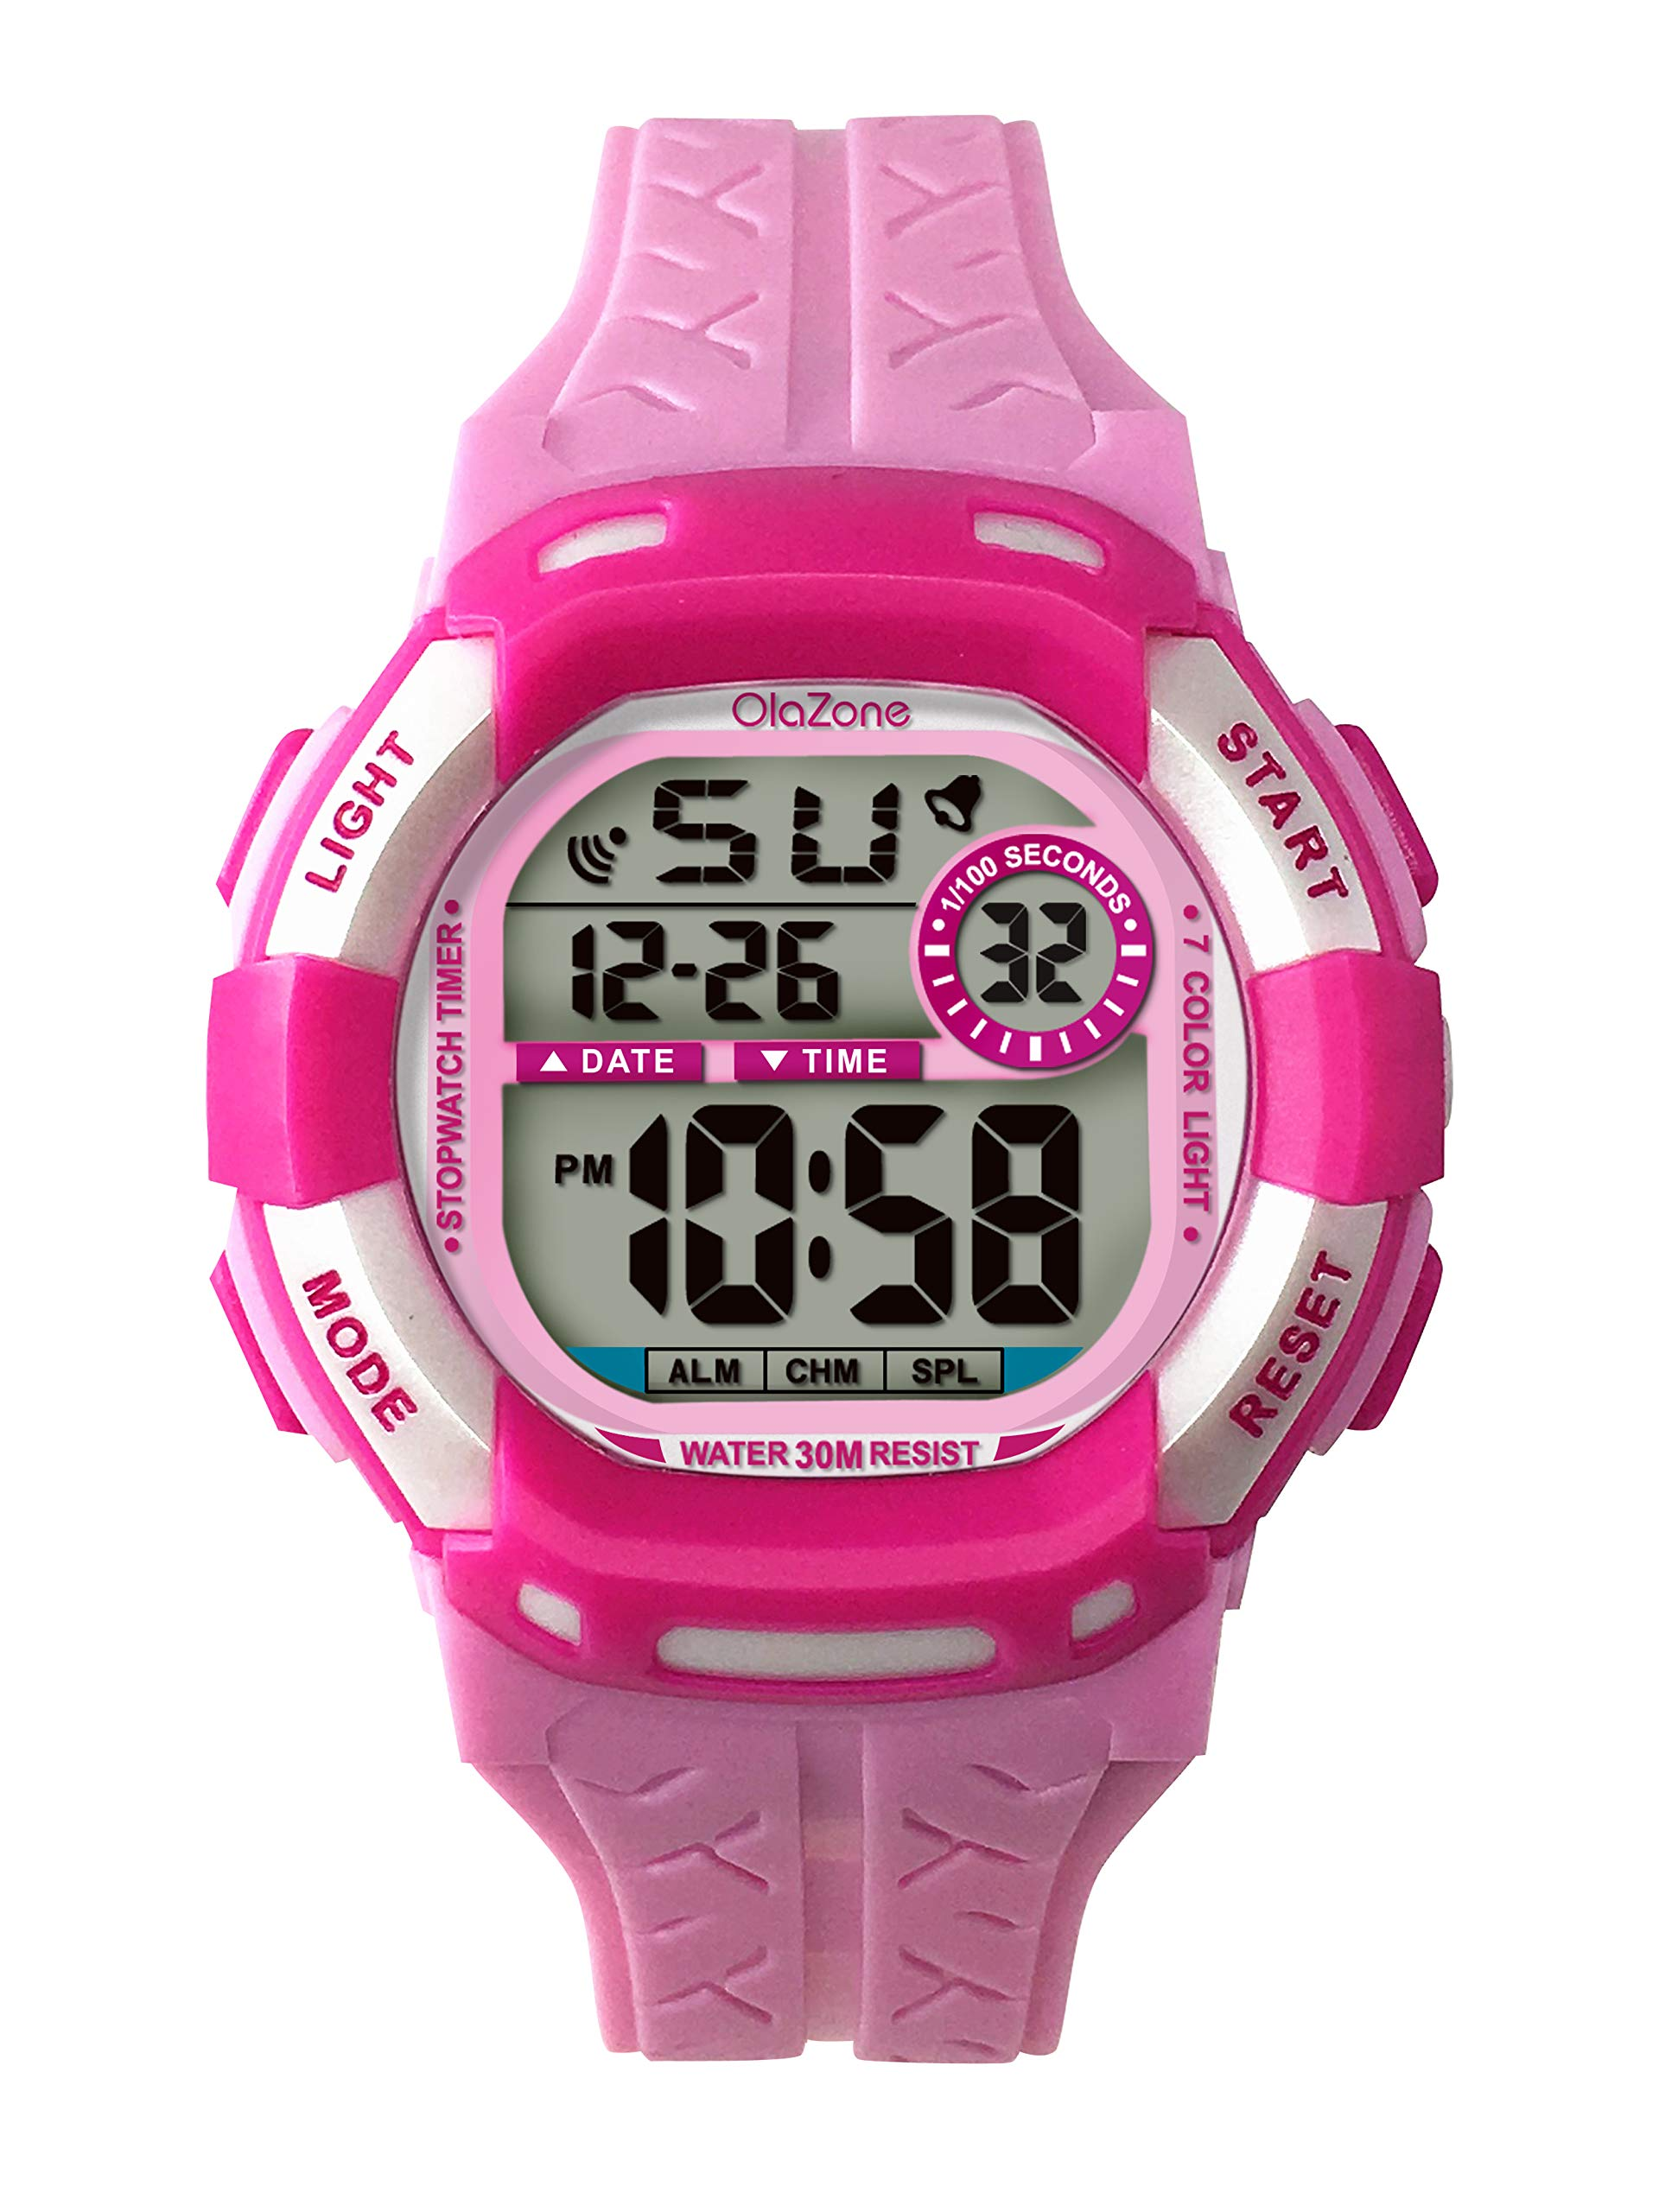 Kids Watches Girls Boys Digital 7-Color Flashing Light Water Resistant 100FT Alarm Gifts for Girls Age 5-10 485 (Pink) by OLAZONE